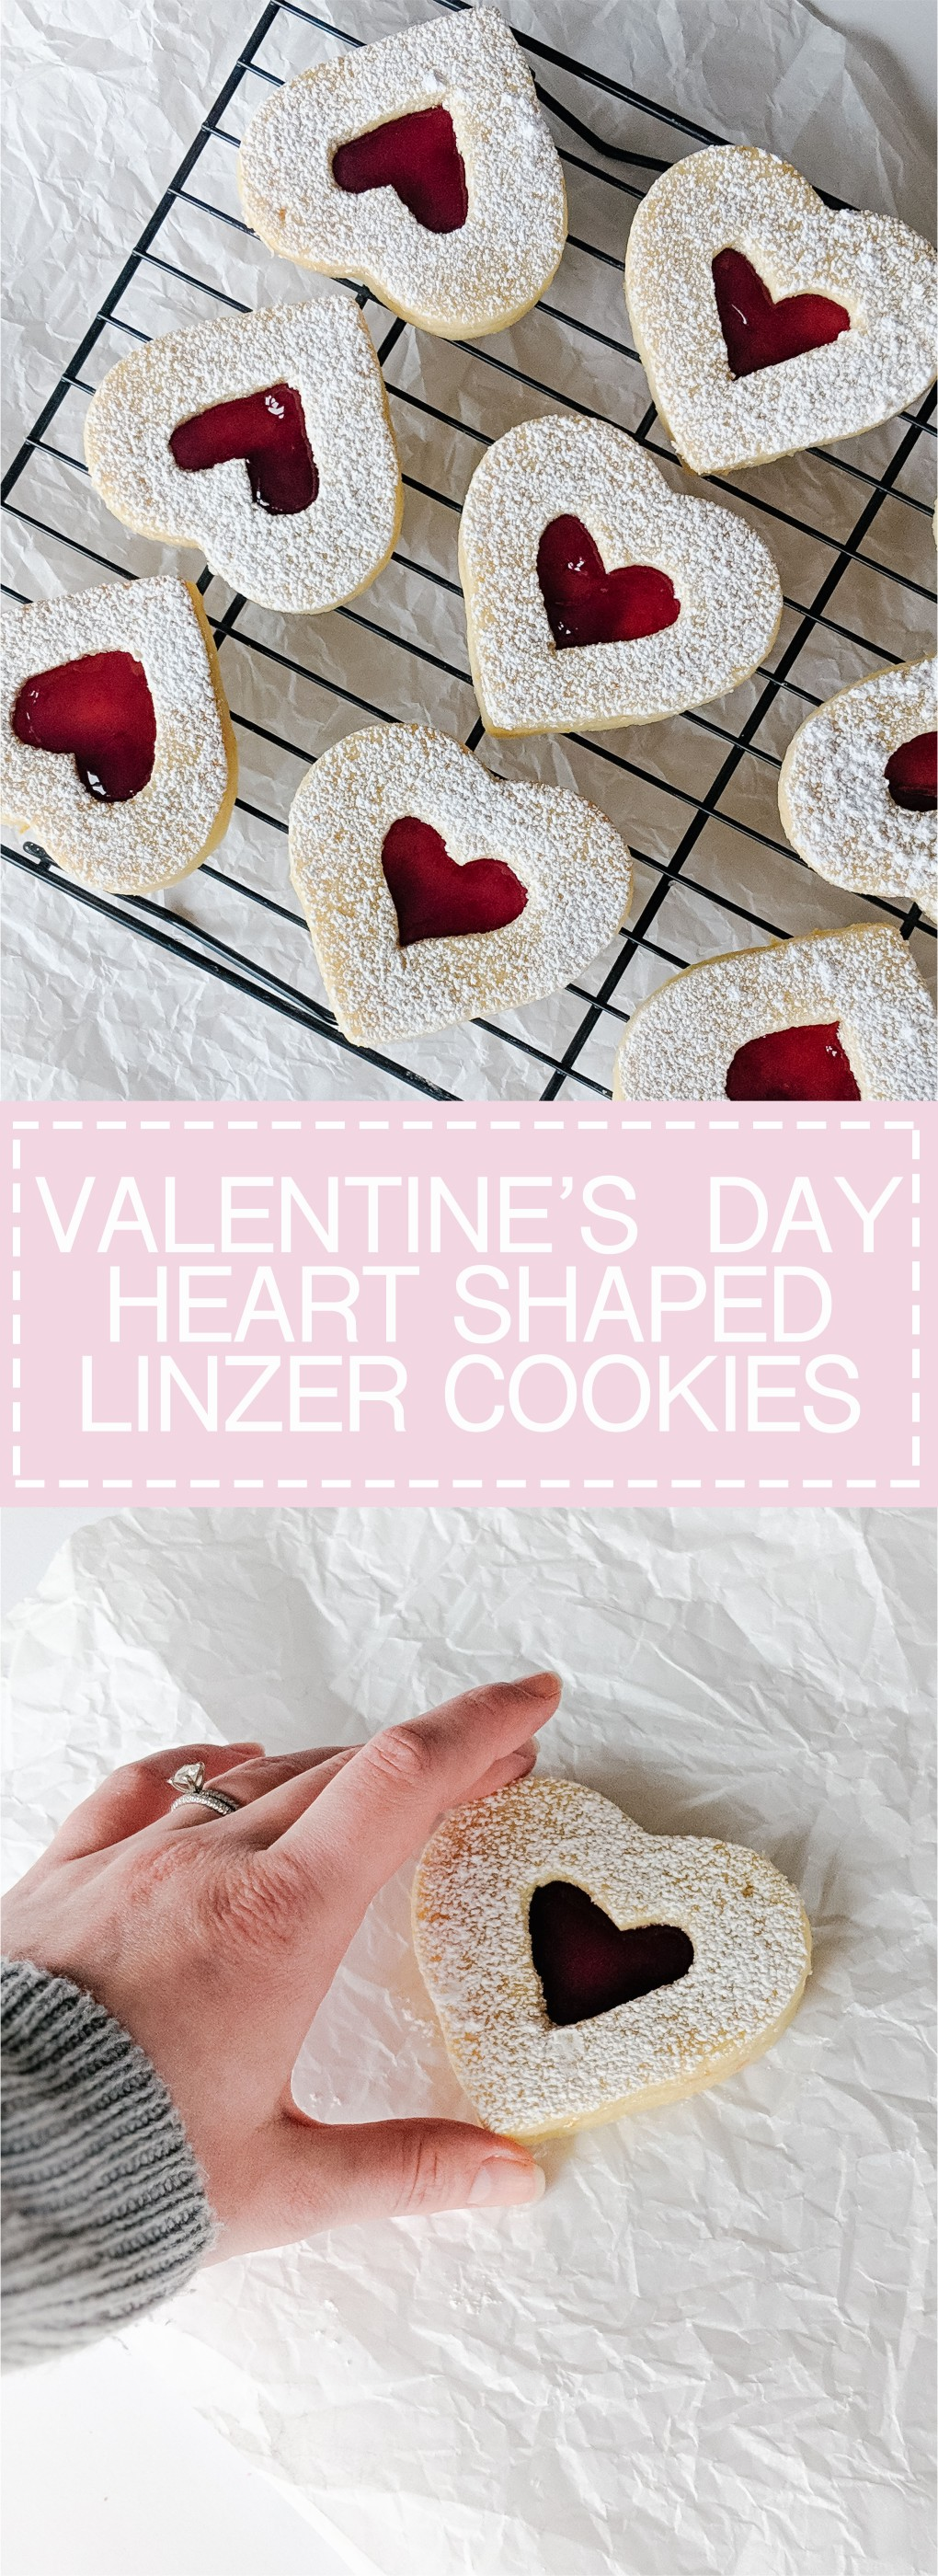 Lemon Raspberry Linzer Cookies - Valentine's Day Treats, yummy!